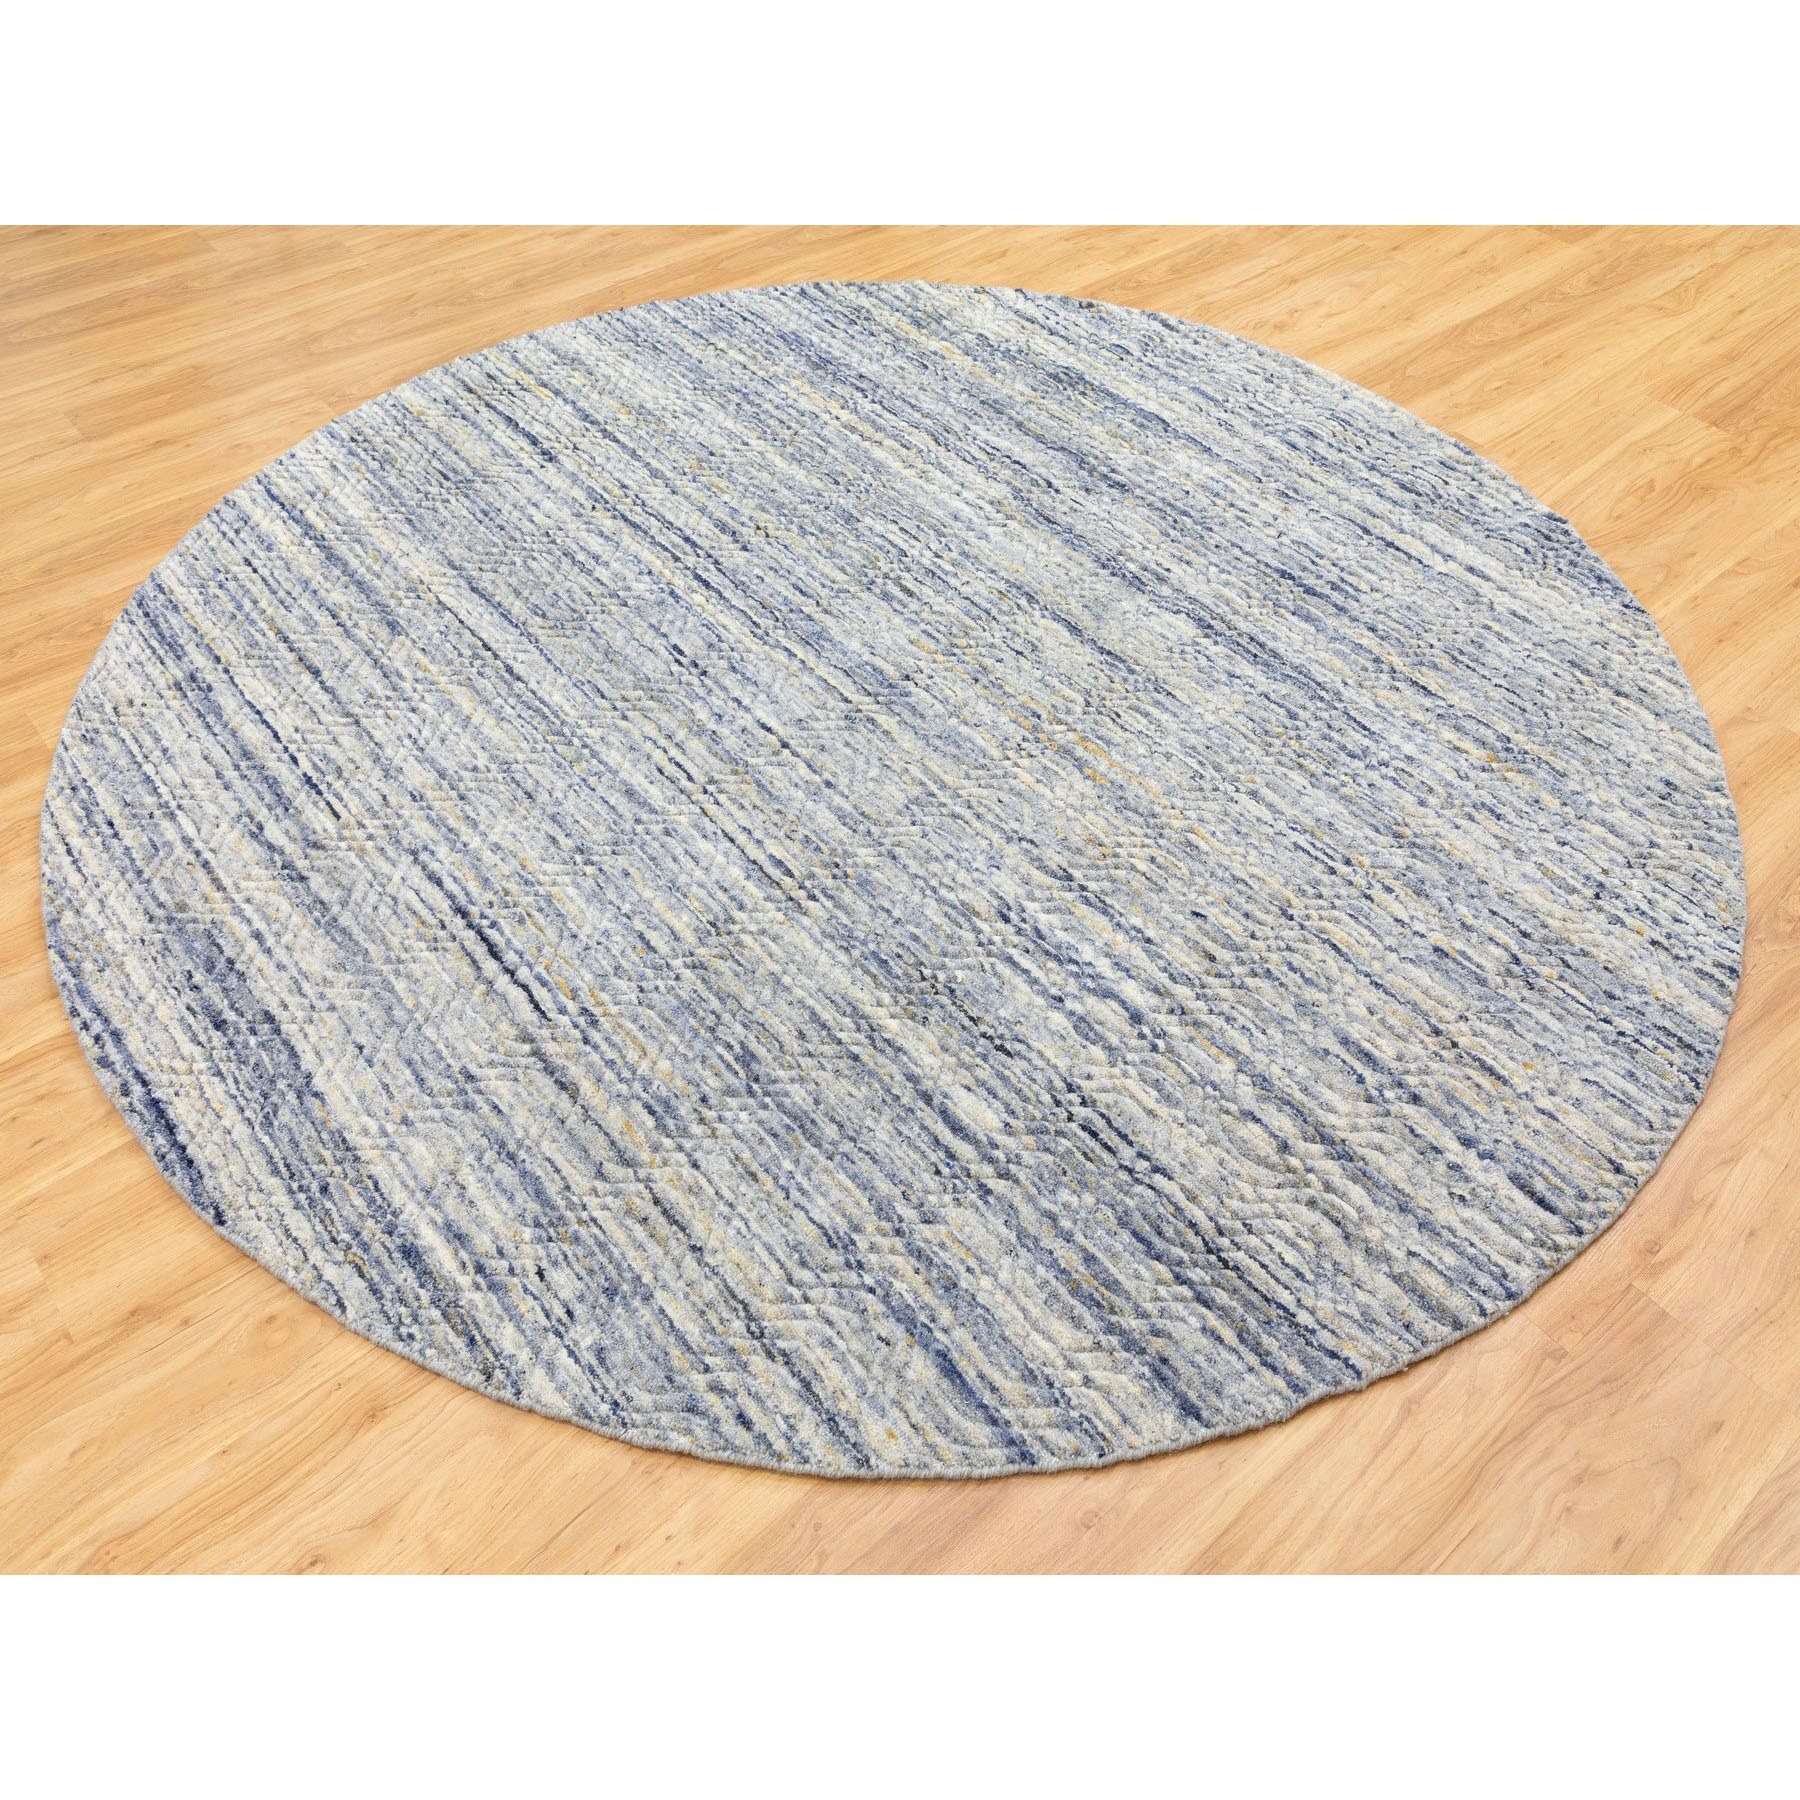 8'x8' Blue Variegated Design Hand Loomed Pure Wool Modern Round Oriental Rug